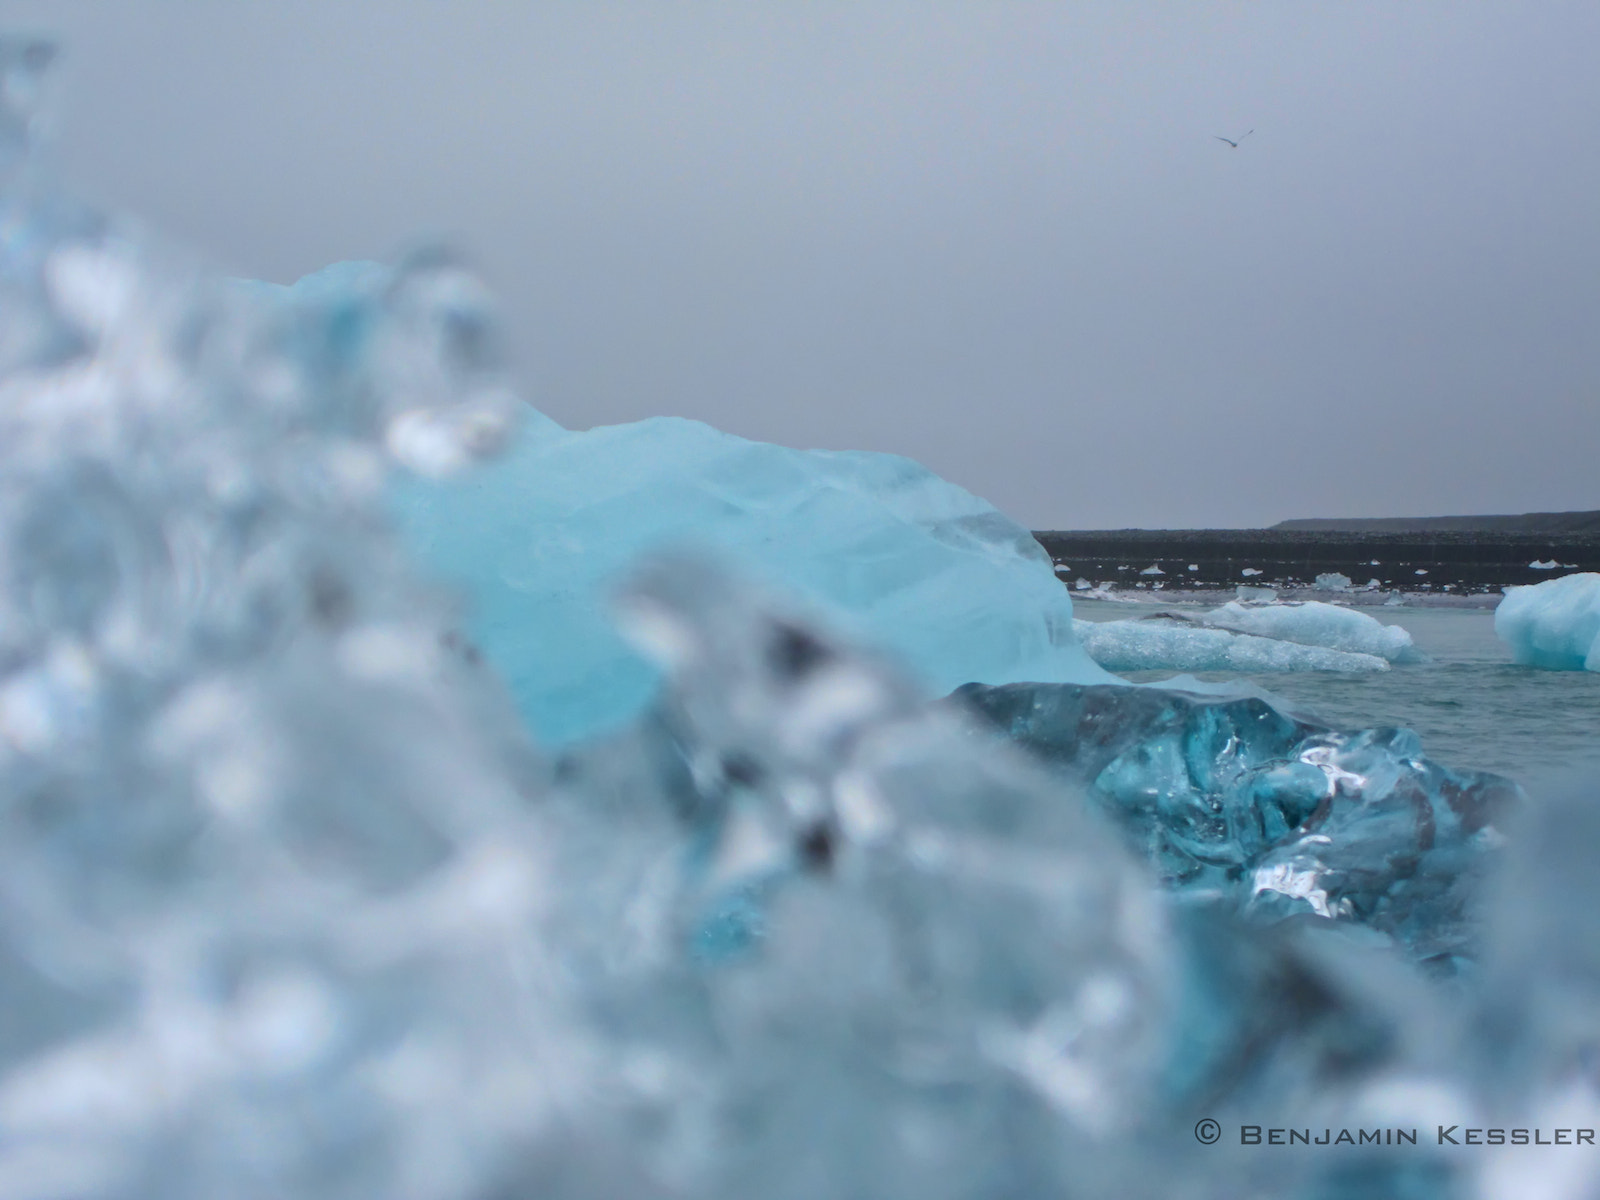 Photograph The beauty of Ice by Benjamin Kessler on 500px